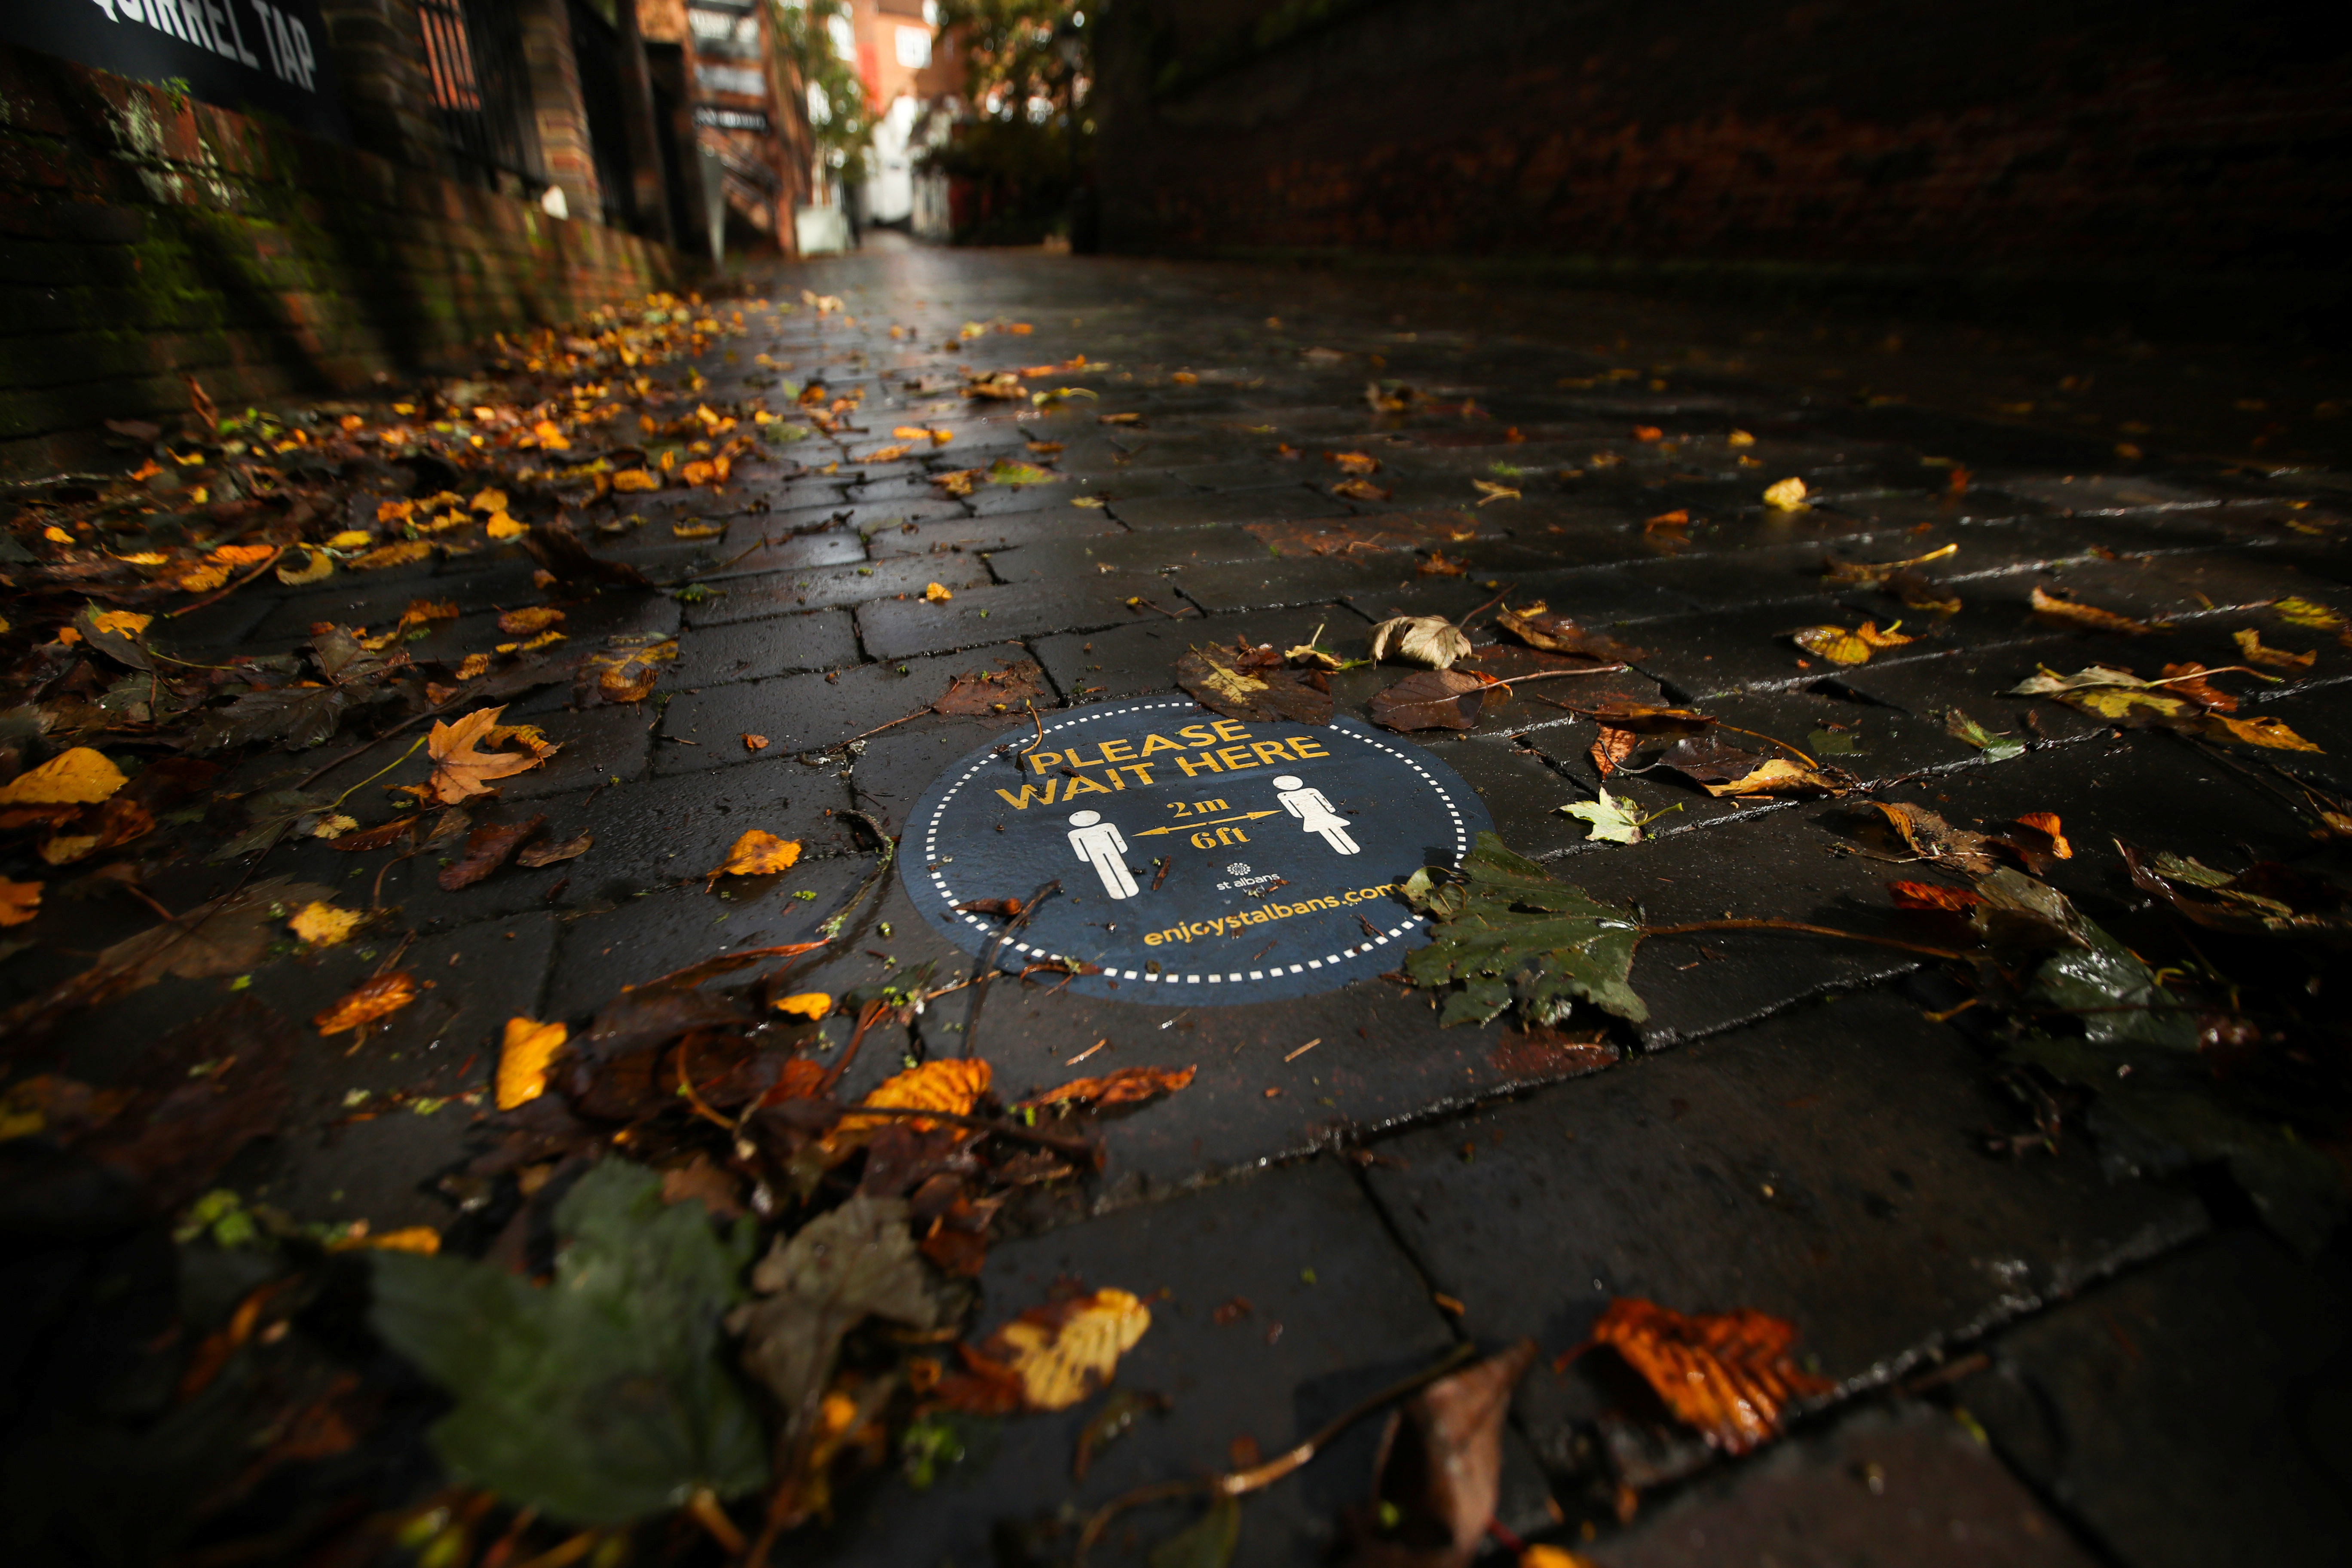 A social distancing sign is seen among autumn leaves, following the outbreak of the coronavirus disease (COVID-19), in St. Albans, Britain, October 8, 2020.  REUTERS/Peter Cziborra - RC2CEJ9AKYI7